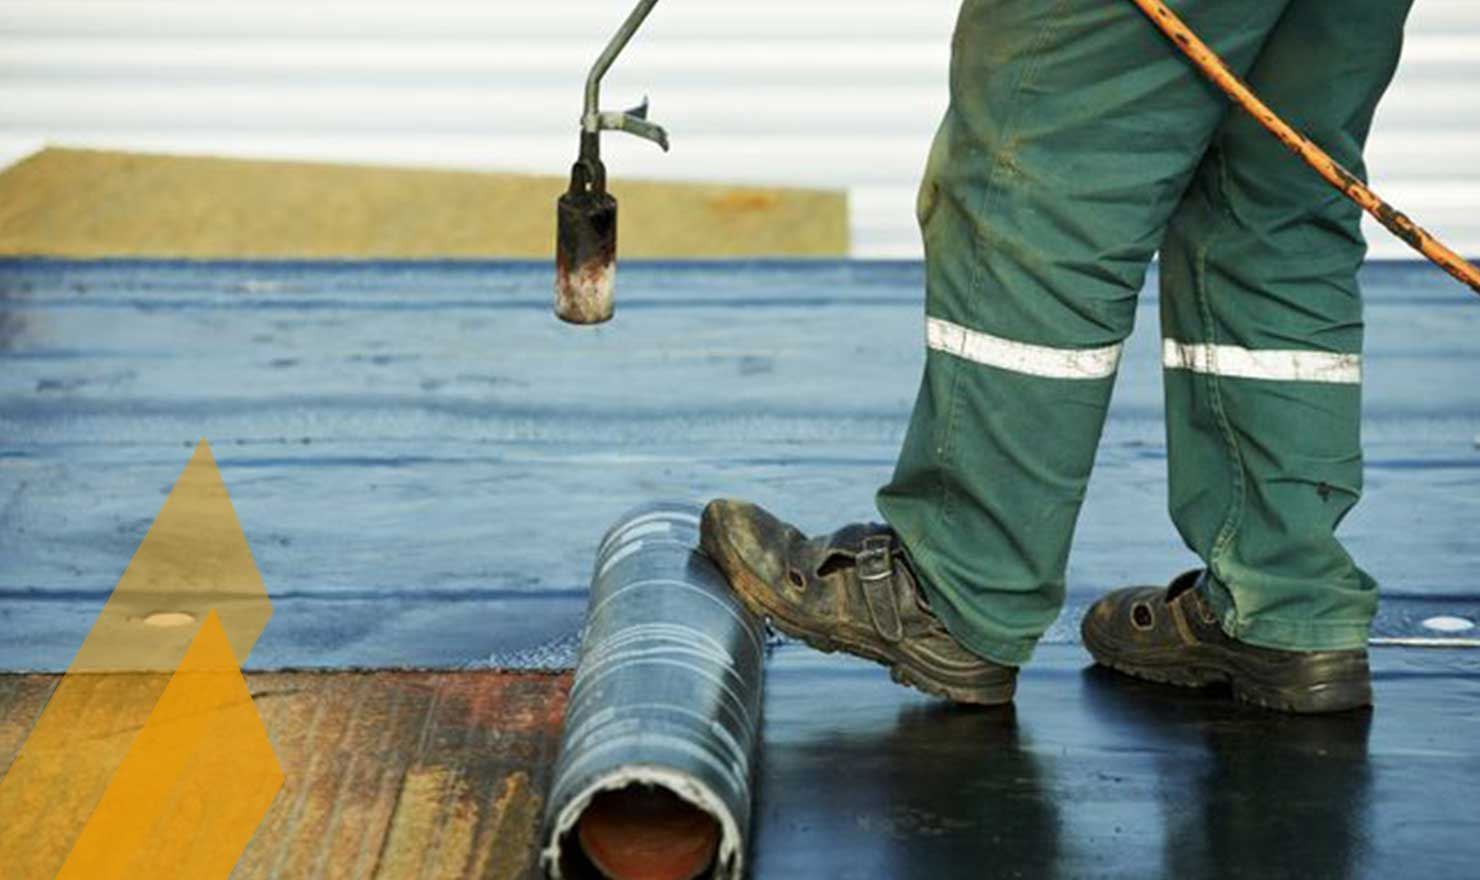 Flat Roofing Company In Edmonton by MD Roofing - roofer laying down flat SBS roofing